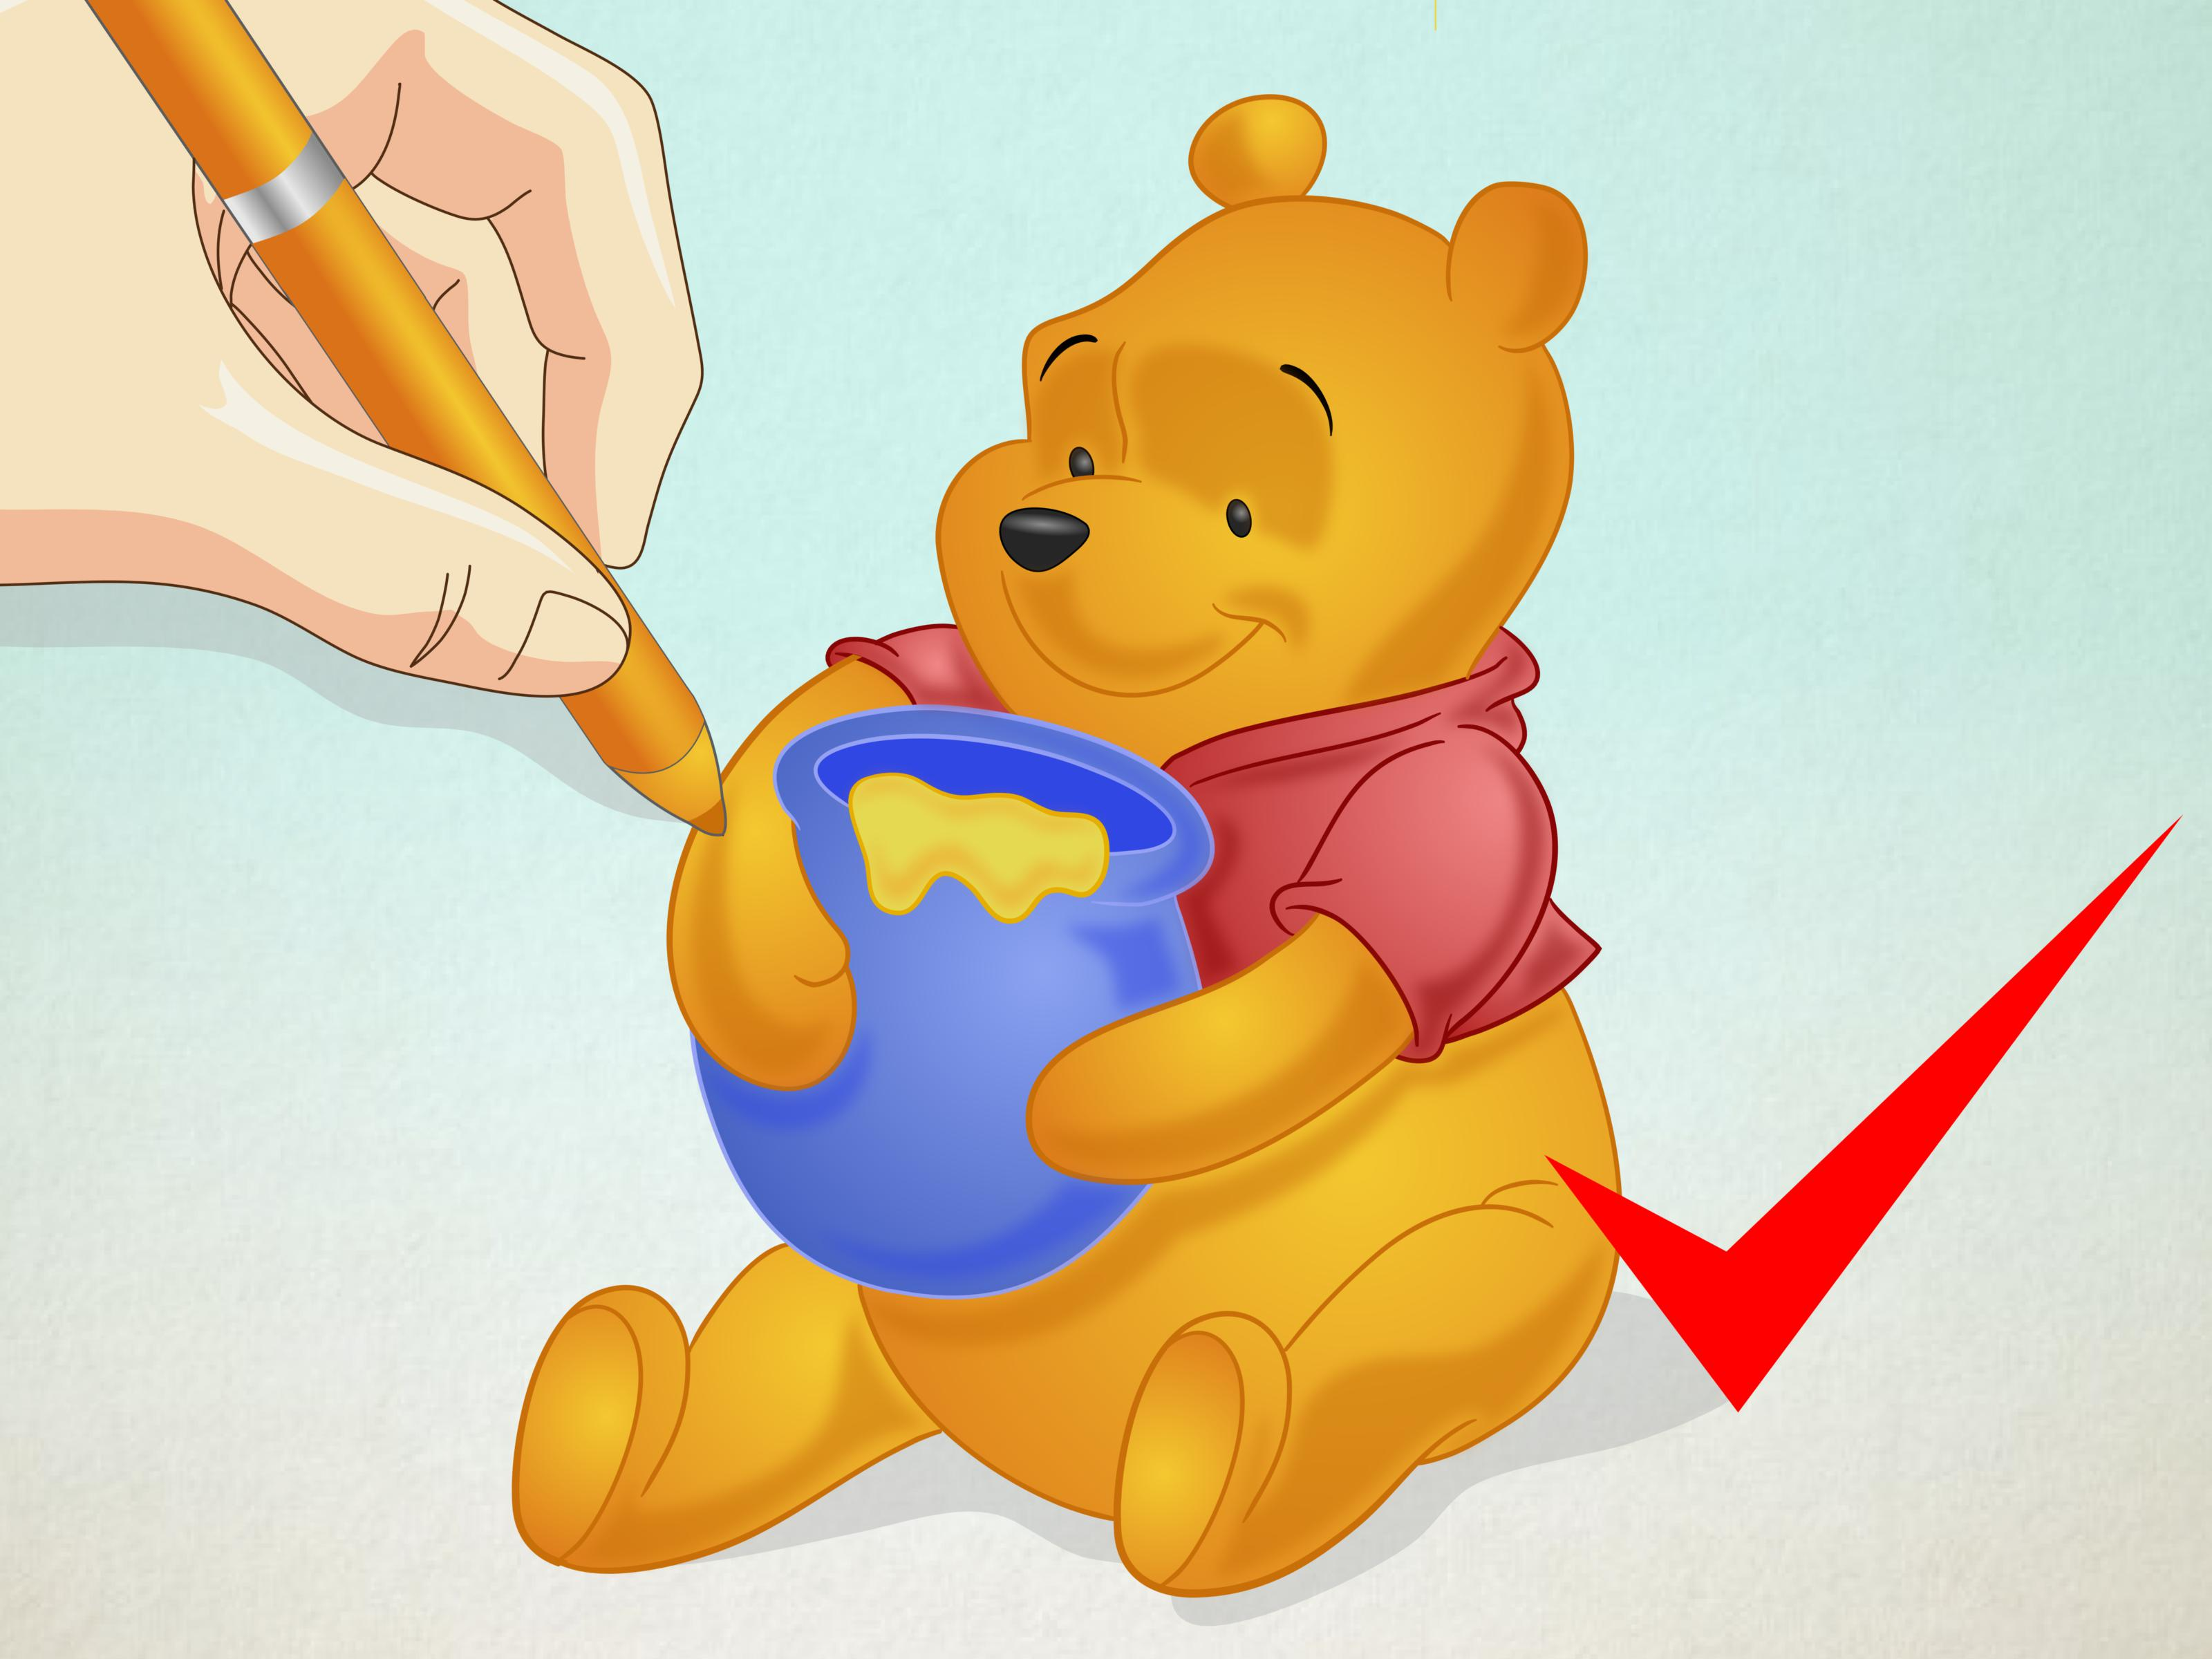 3200x2400 How To Draw Winnie The Pooh 15 Steps (With Pictures)